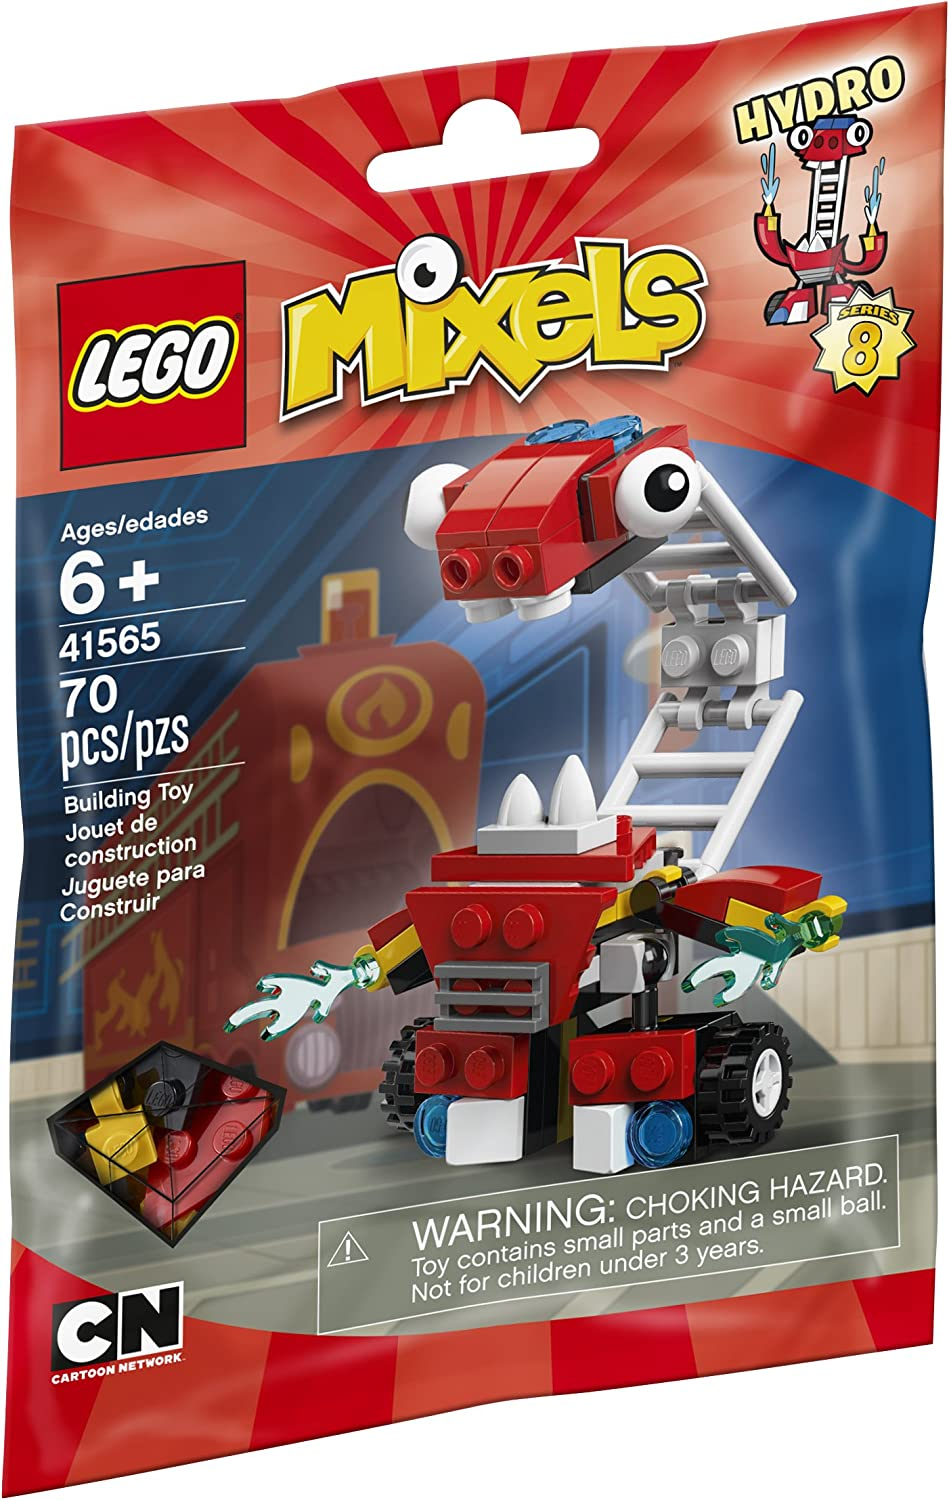 LEGO Mixels 41565 Hydro Building Kit